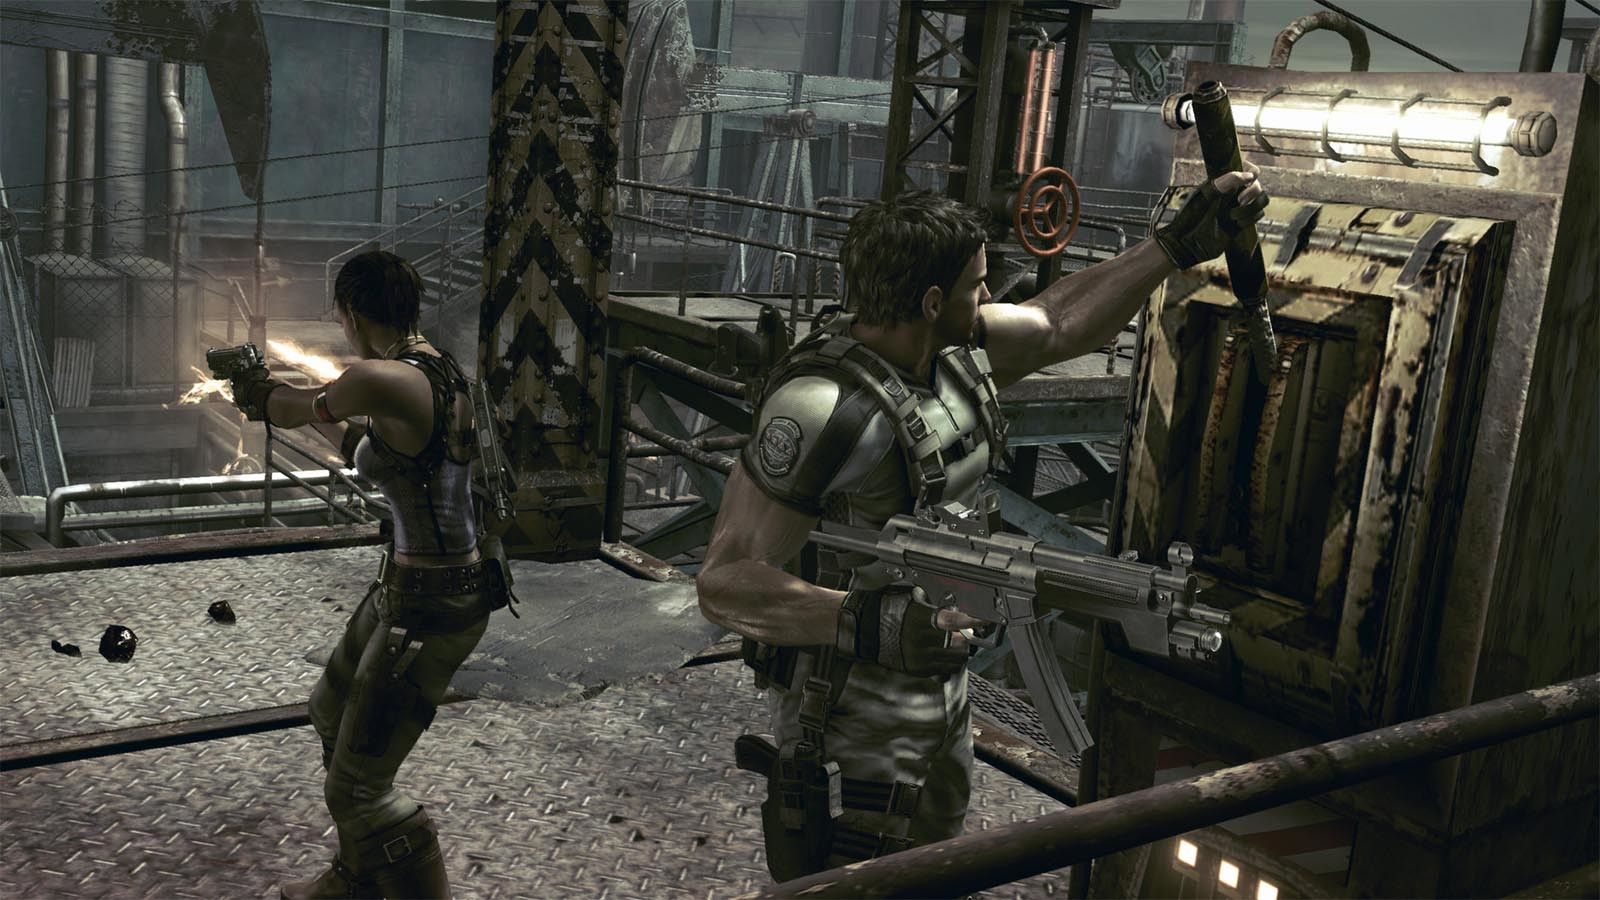 Resident Evil 5 [Steam CD Key] for PC - Buy now